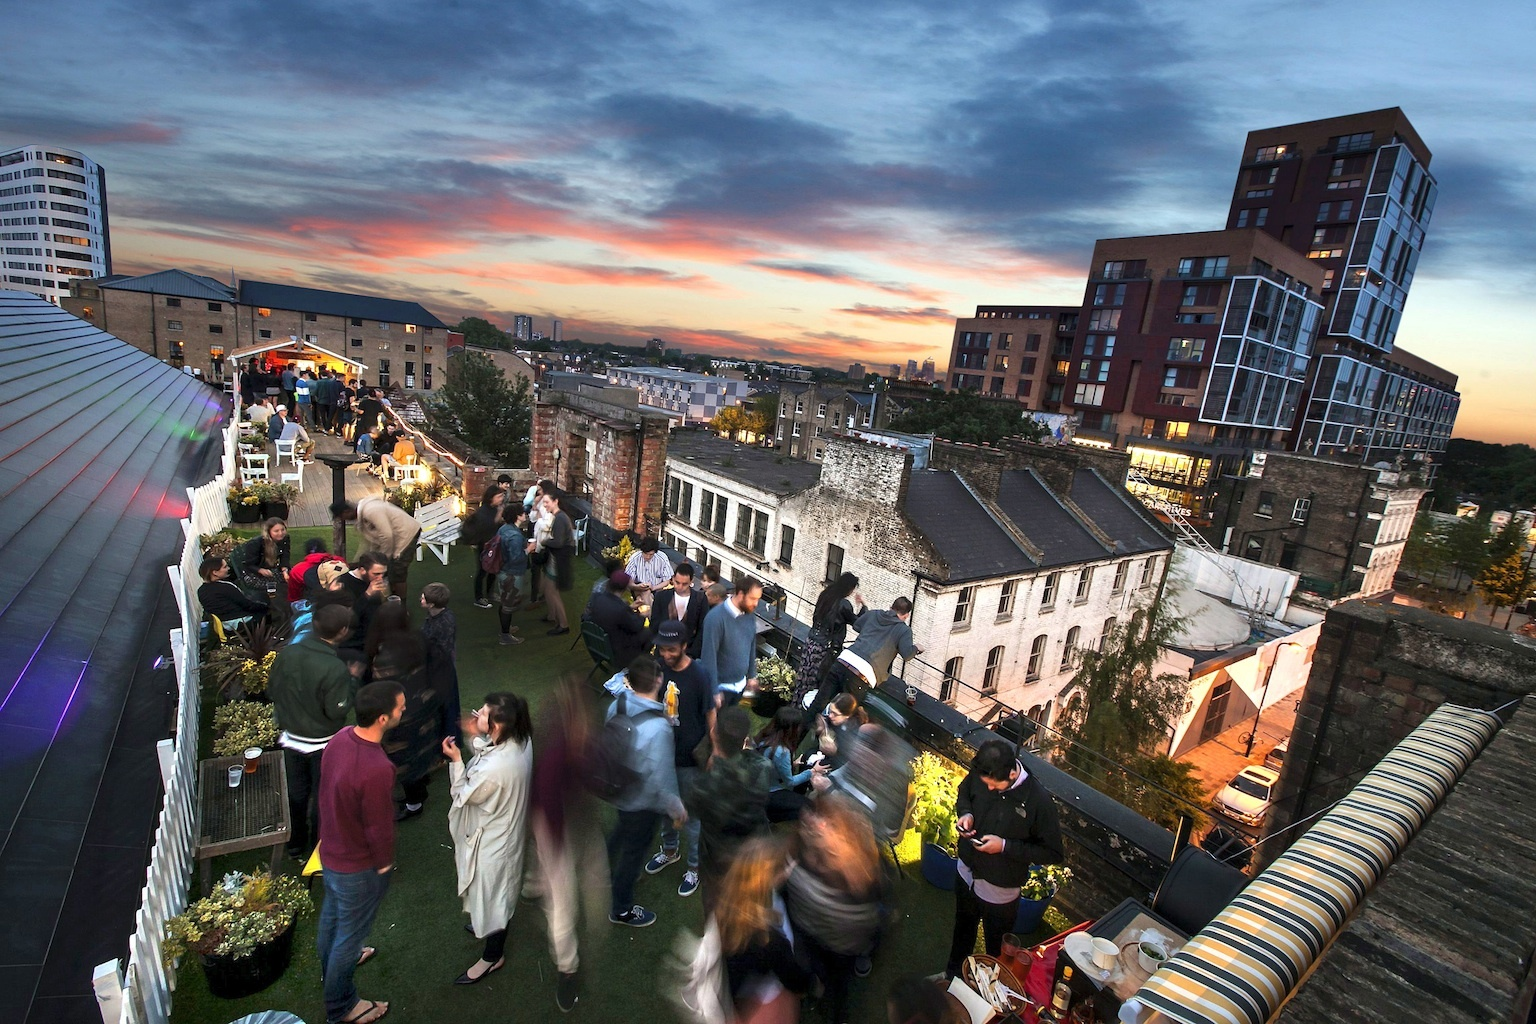 Rooftop parties in London